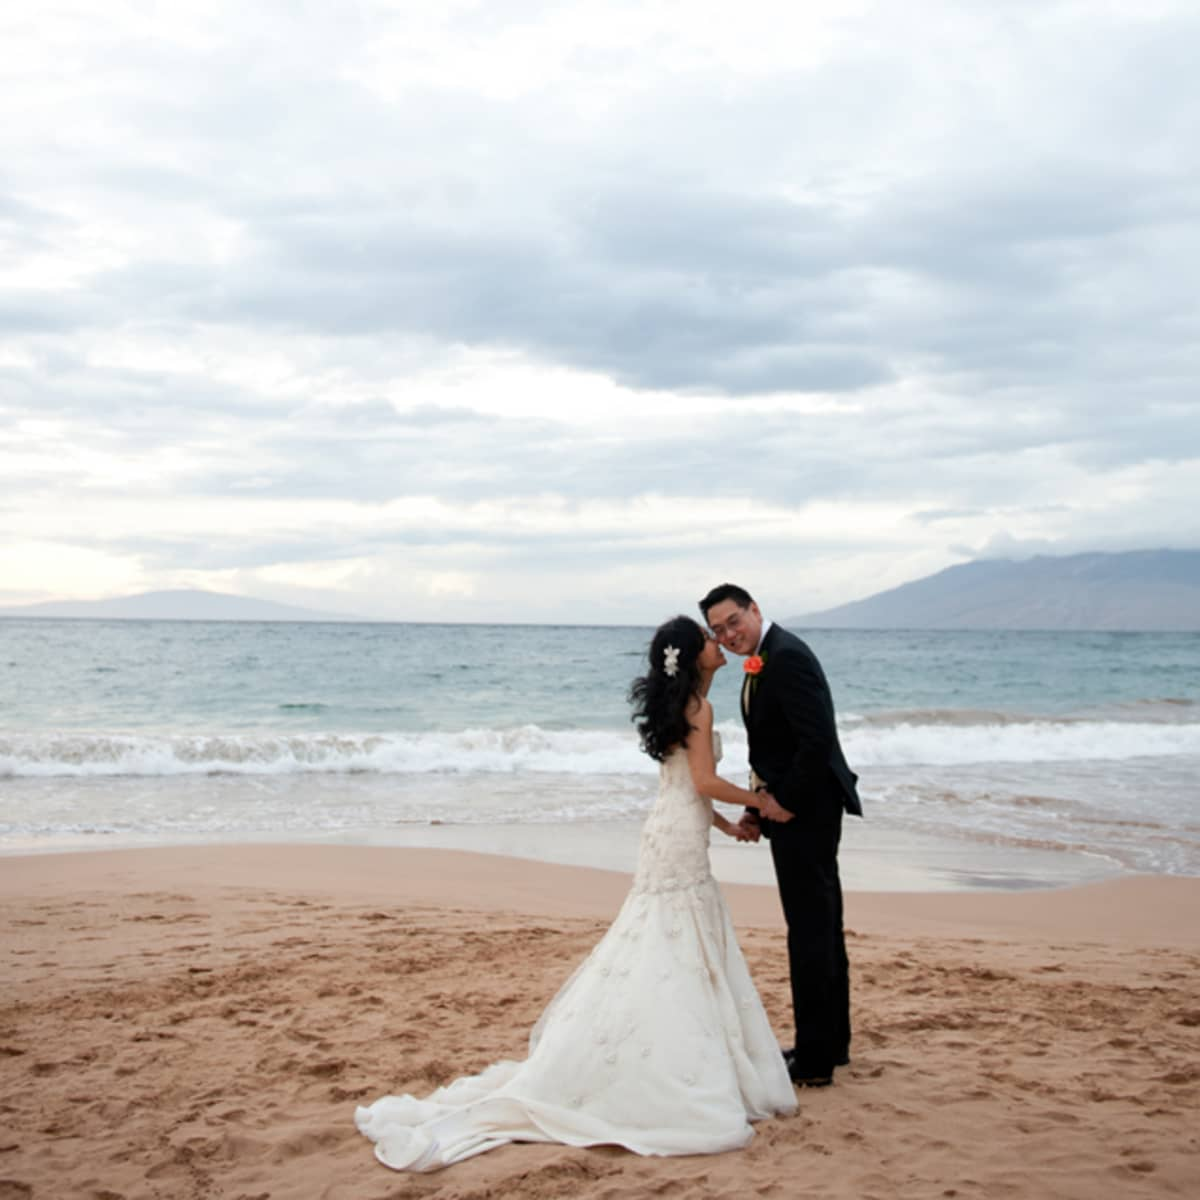 The Beach Serves As Backdrop For Formal Portraits